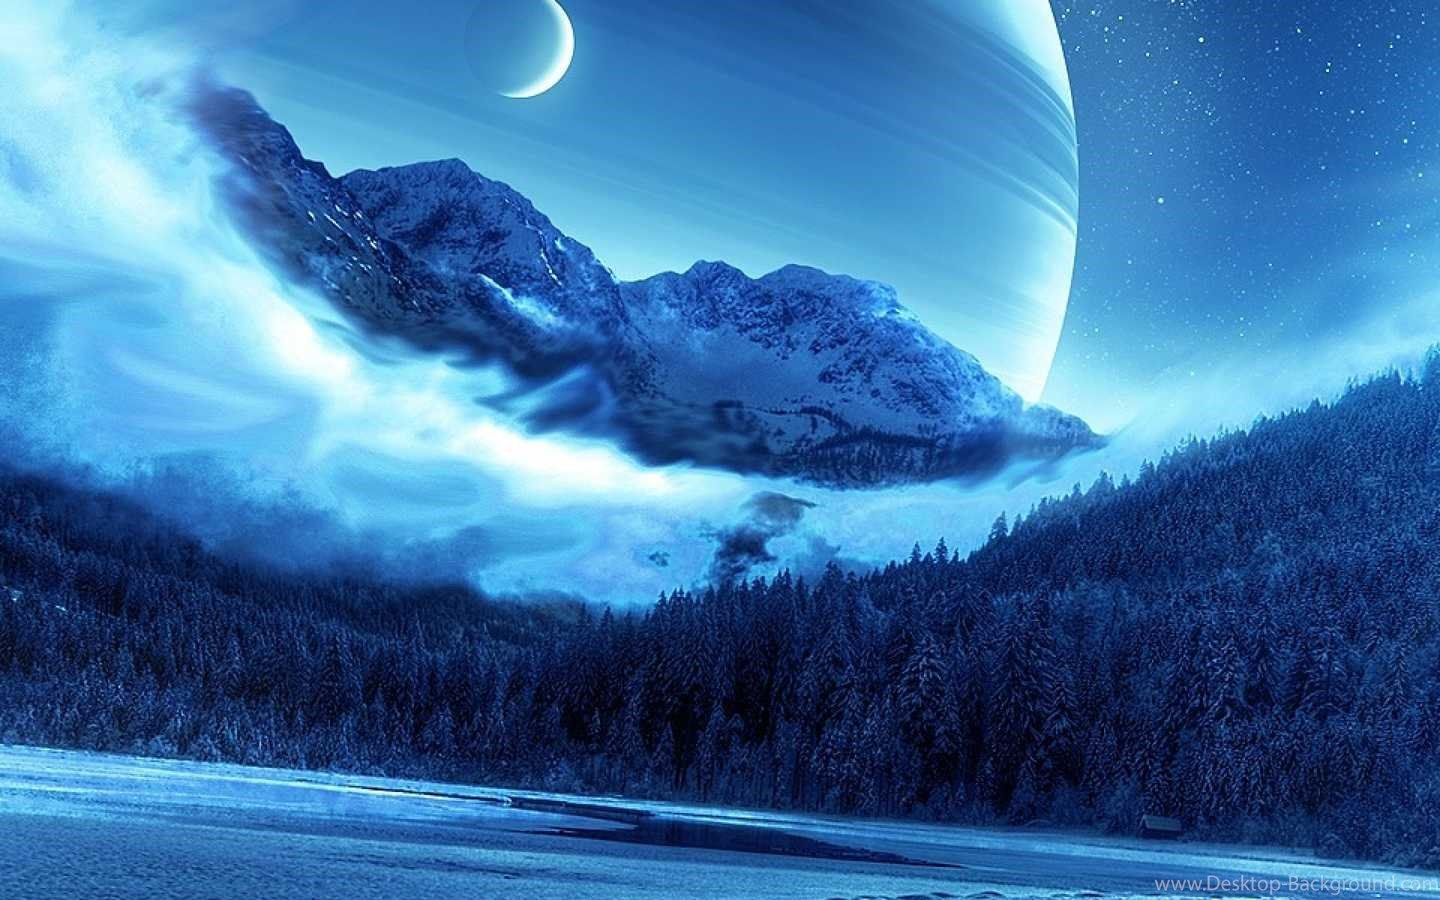 Wallpaper Blue Moon And Galaxy 1020209 Hd Wallpaper Backgrounds Download